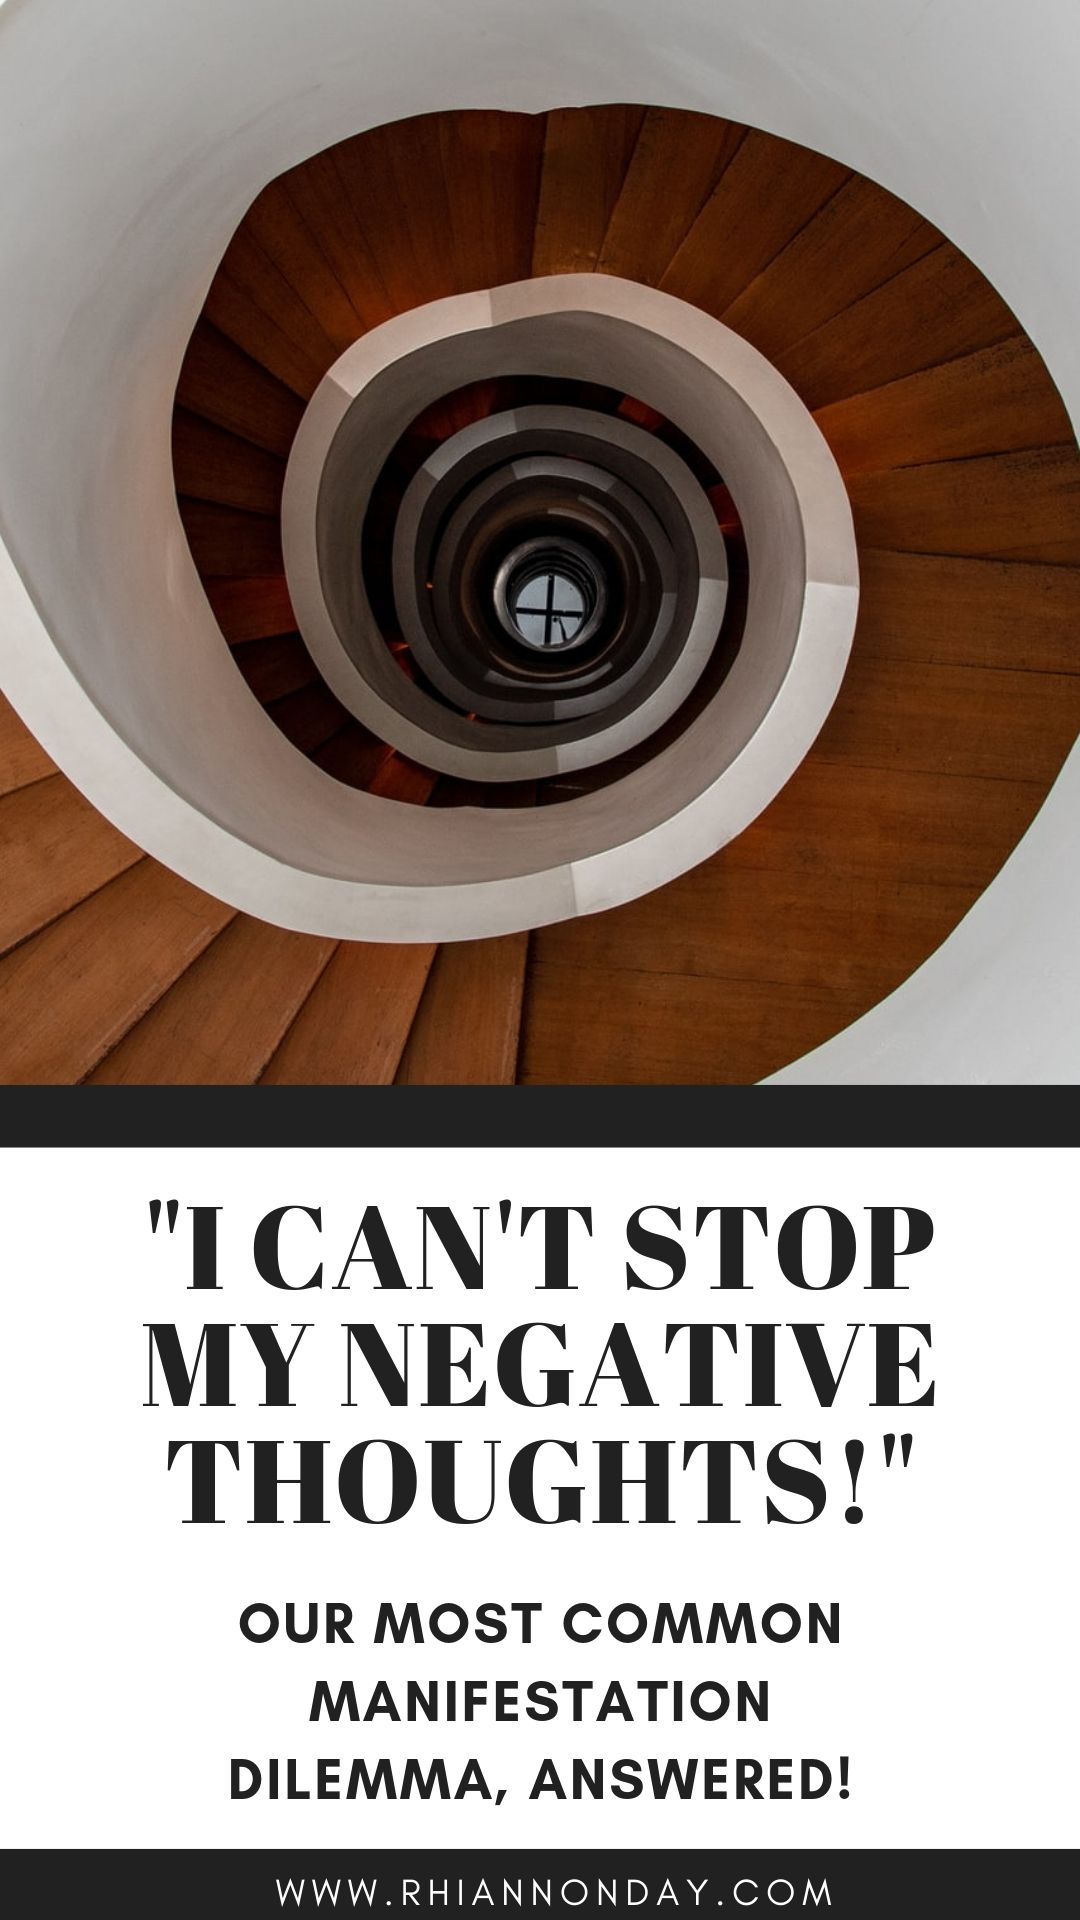 If you're doing everything to stop a negative thought spiral, thinking positive isn't working, and you're worried that it's going to manifest in your life, you're not alone. In fact, it's our most common manifestation problem. We sort out the myths from the truth about thoughts and manifestation, and provide tried and true techniques to get off that negative thought cycle and lift your vibes high! #negativethoughts #manifestation #thinkpositive #highvibe #staypositive #stayhighvibe #lawofattraction